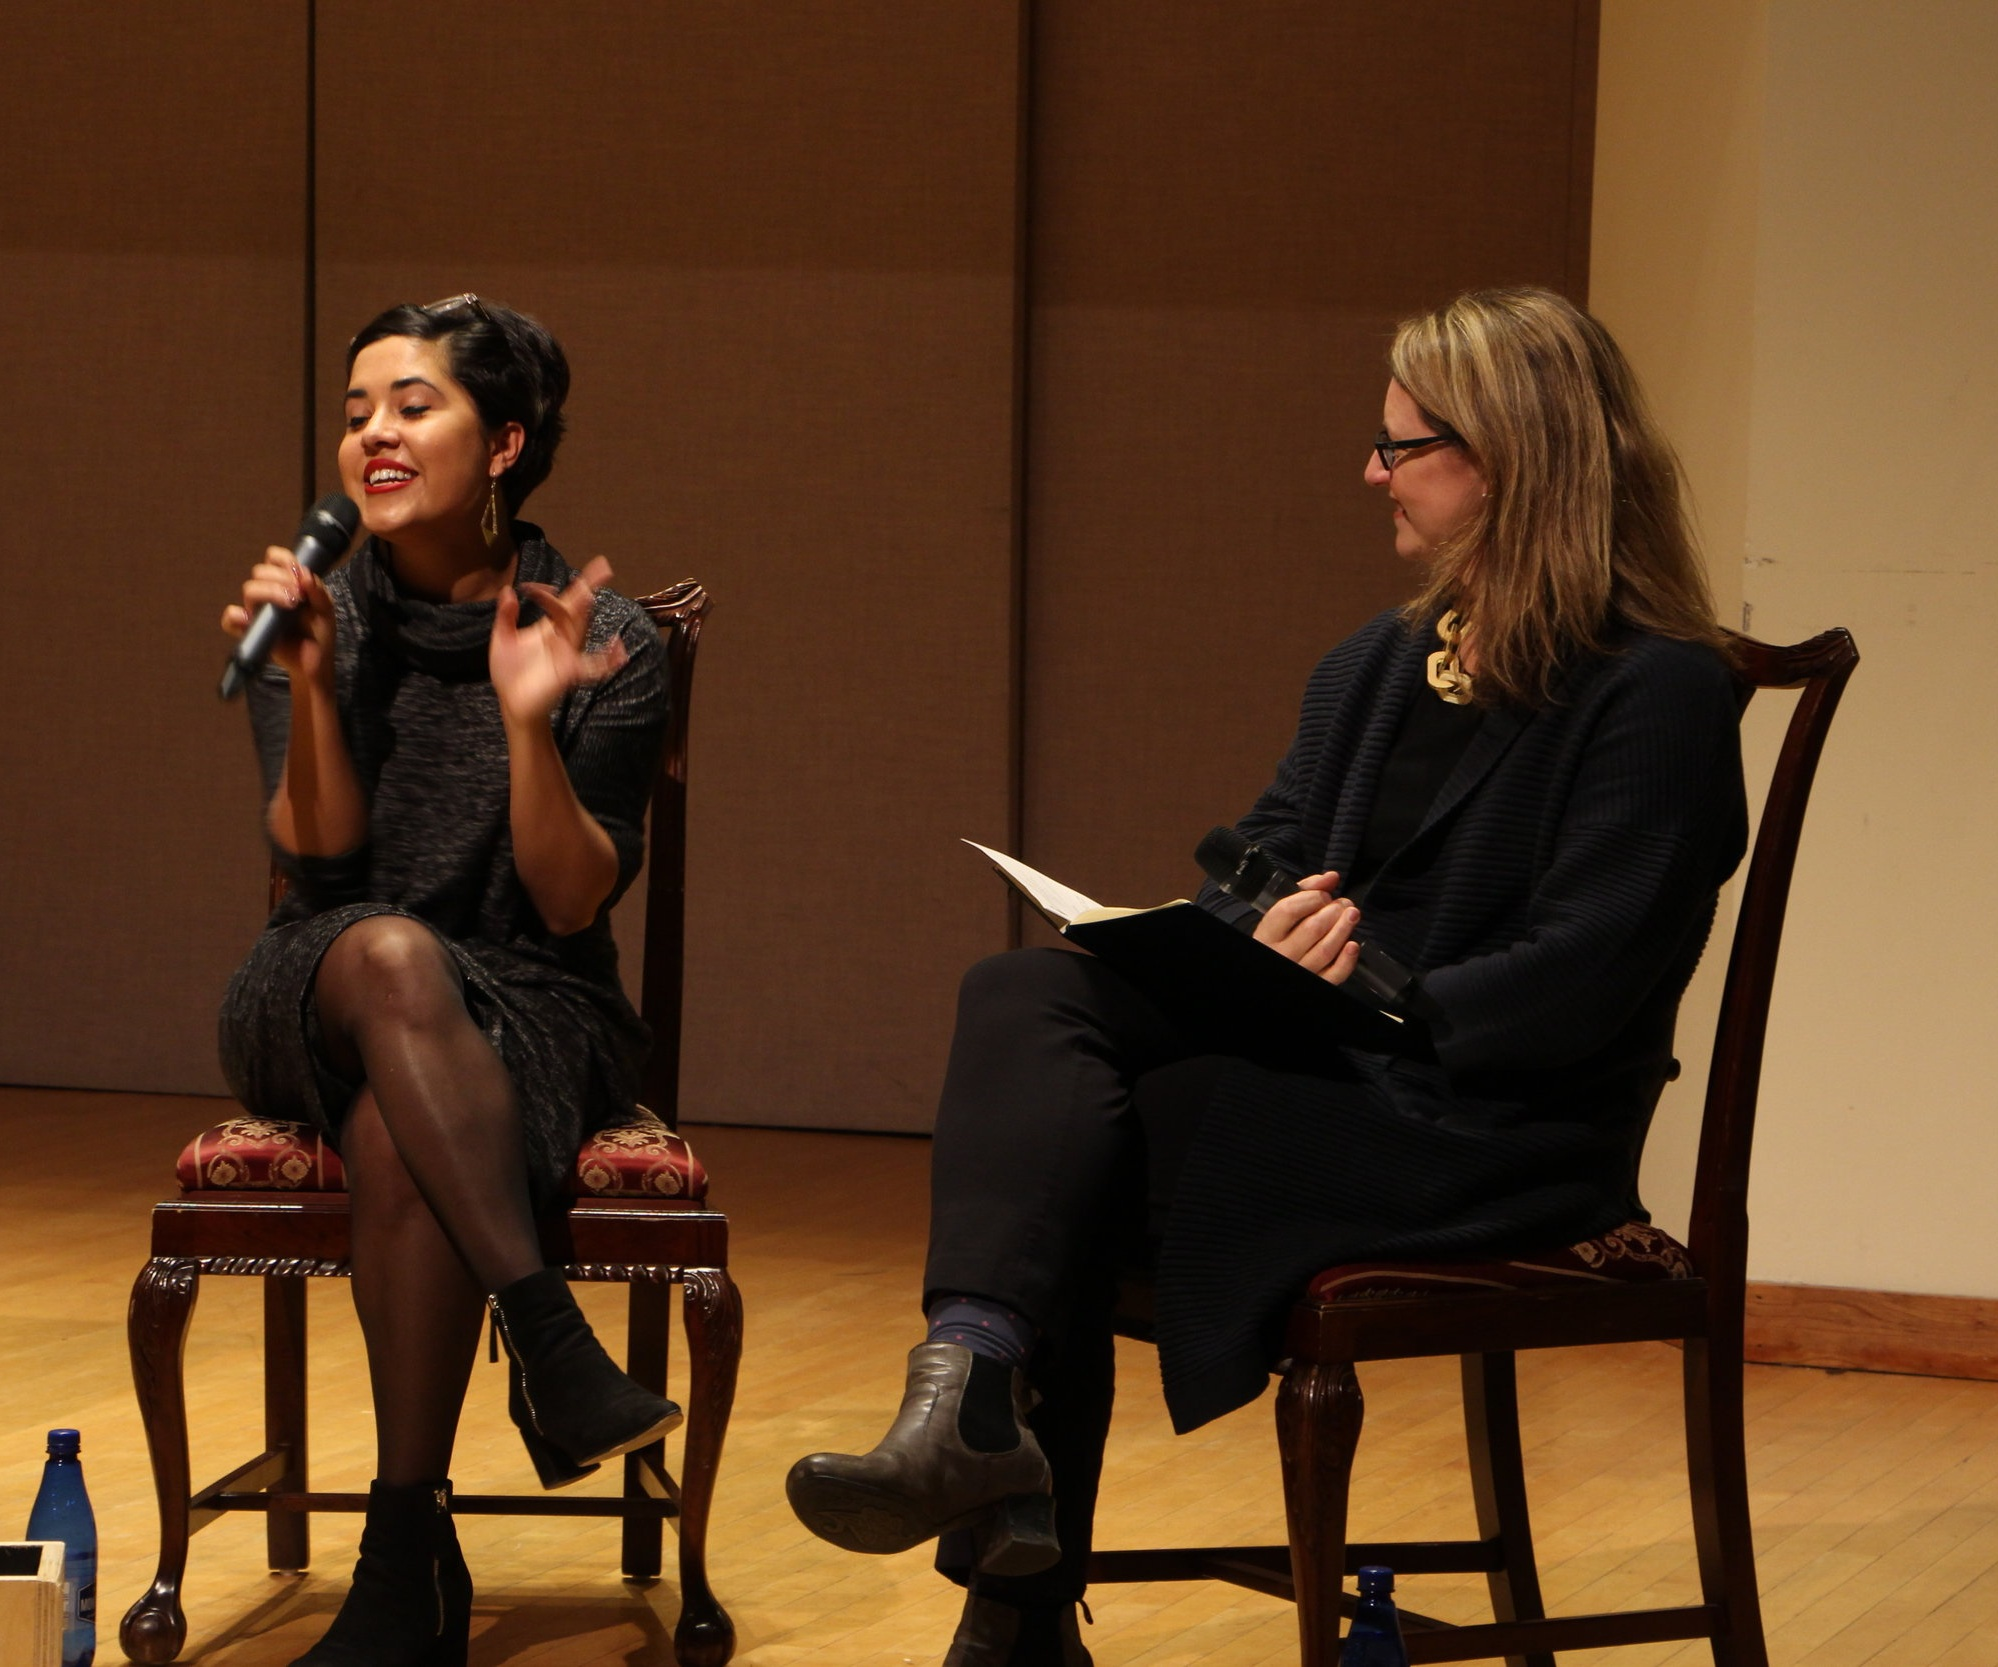 On Stage Interview with Alexandra Smither